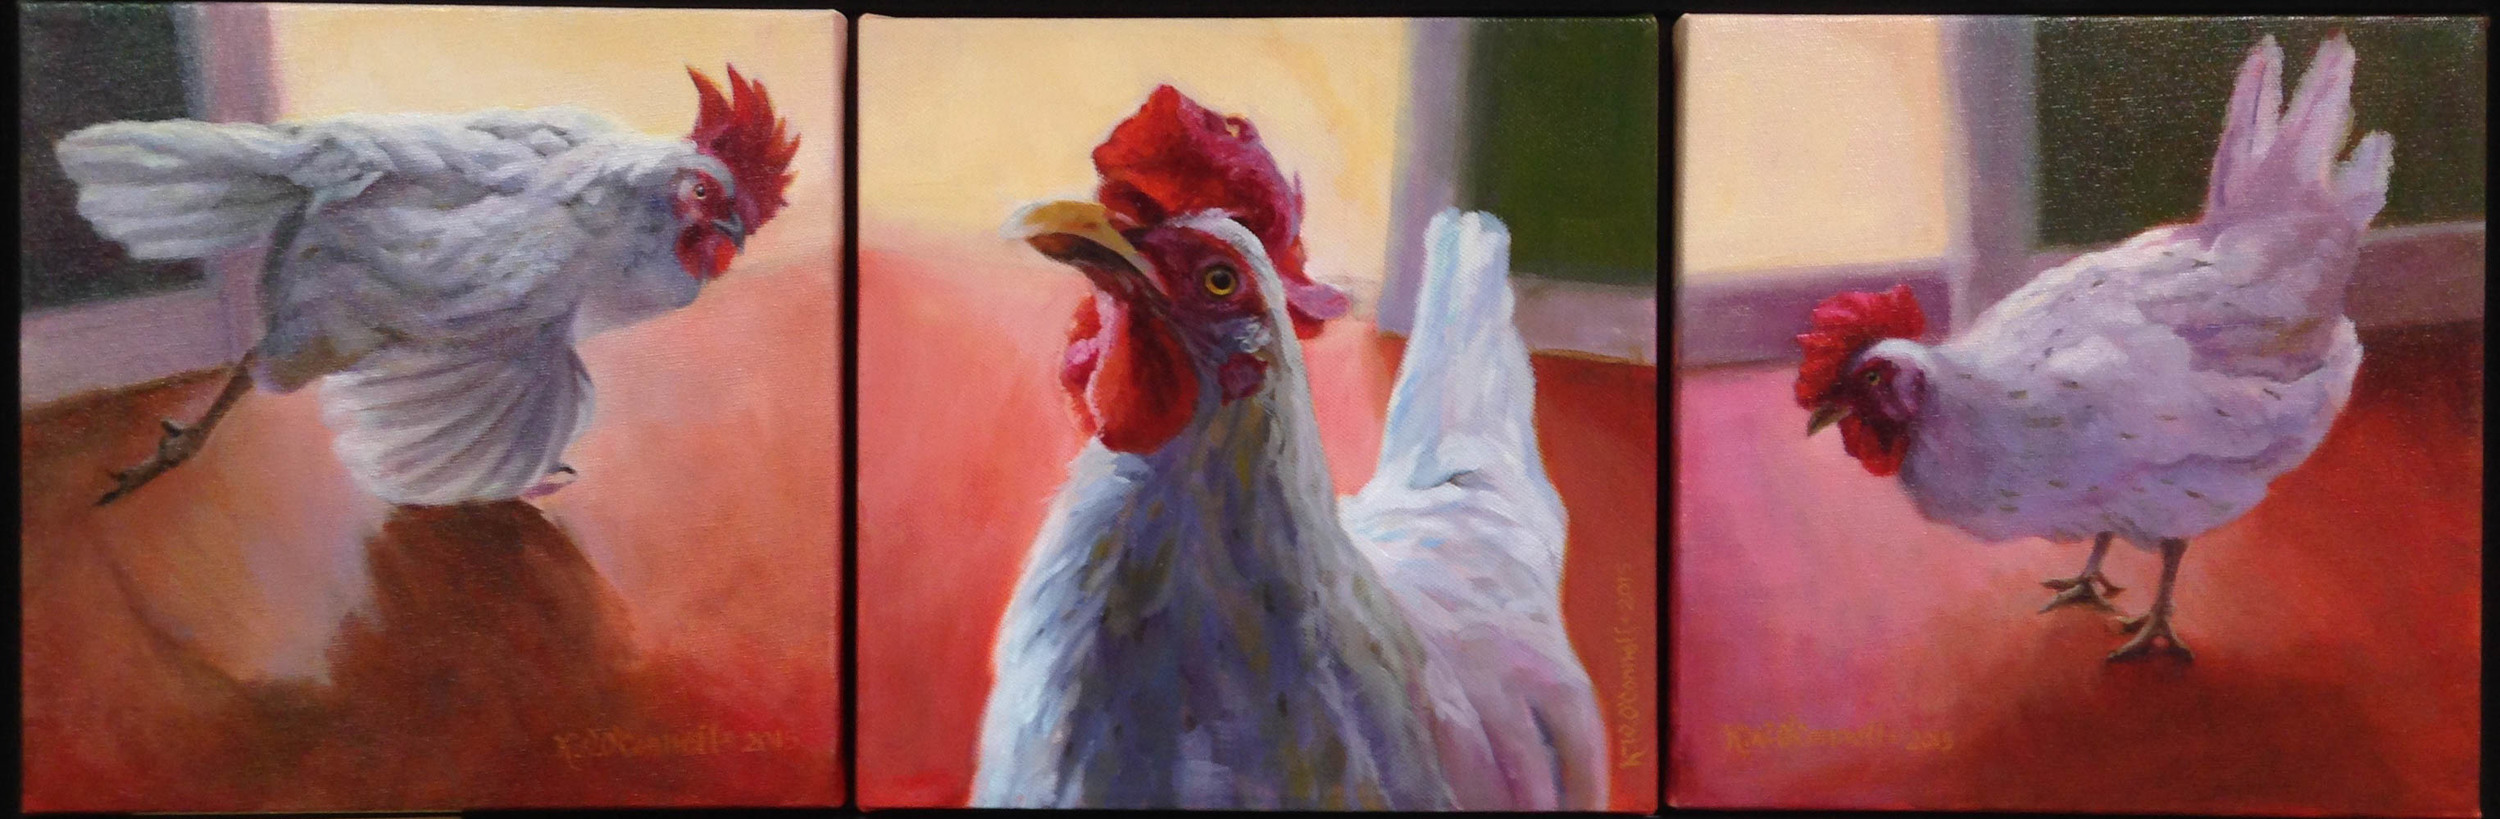 """Kathleen O'Connell, """"Chicken Dance Trio"""", Honorable Mention"""